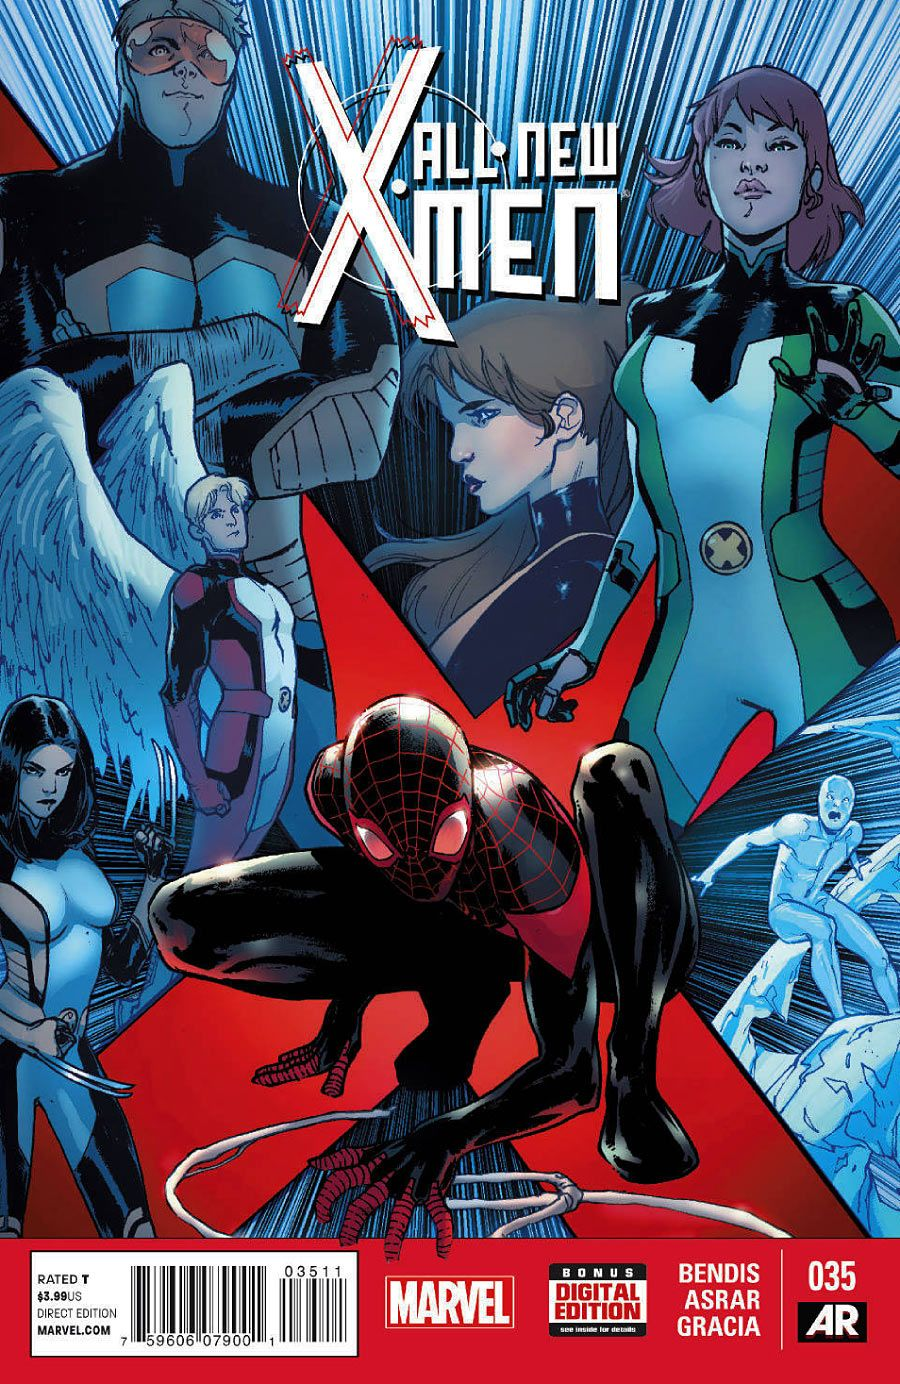 ALL-NEW X-MEN #35 … JANUARY 2015     Brian Michael Bendis (W) * Mahmud Asrar (A) * Sara Pichelli, Marte Gracia (C) … The ALL-NEW X-MEN continue their adventure in the Ultimate Universe! • Guest-starring Miles Morales and scores of other Ultimate characters! • Will either universe ever be the same again?  #AllNewX-Men